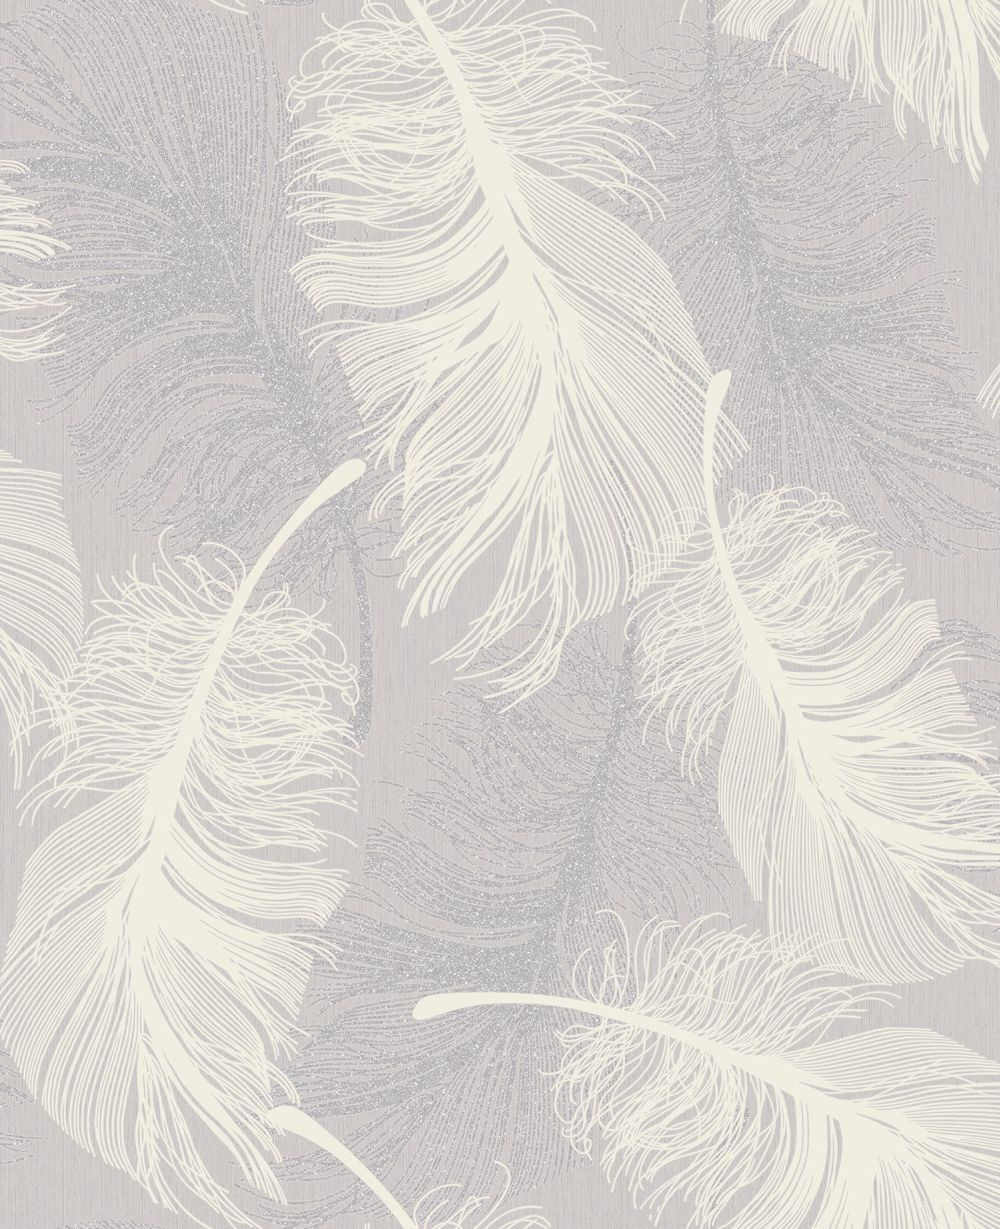 Lilac Bedroom Wallpaper Feather Lilac Wallpaper By Coloroll Bedroom Pinterest